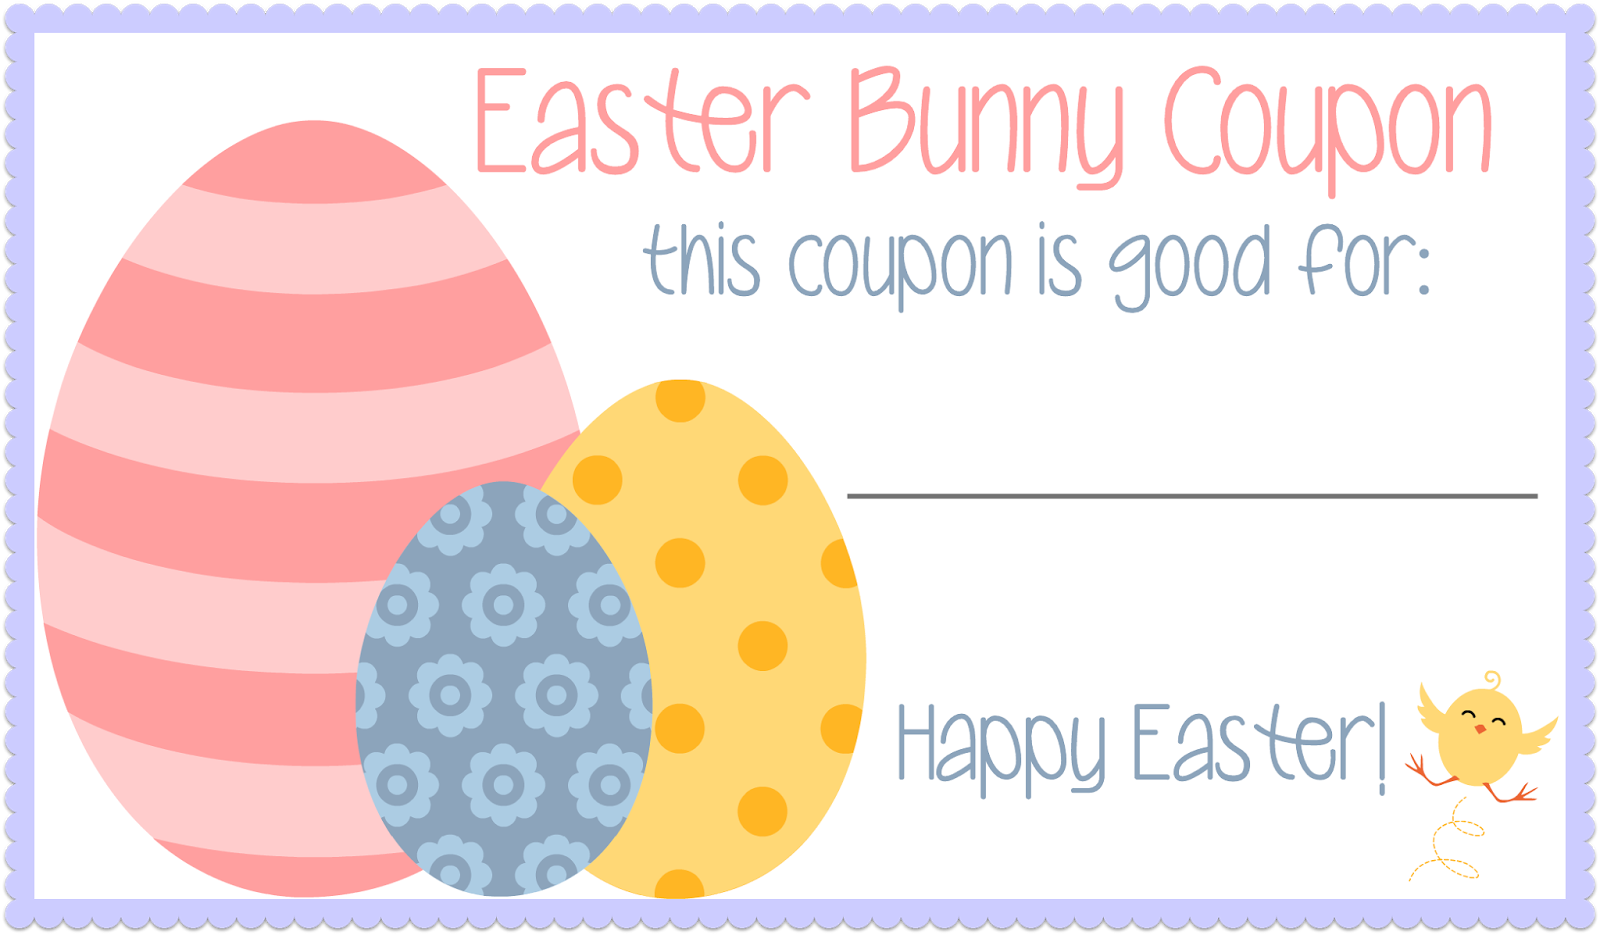 Skinny bunny coupon code